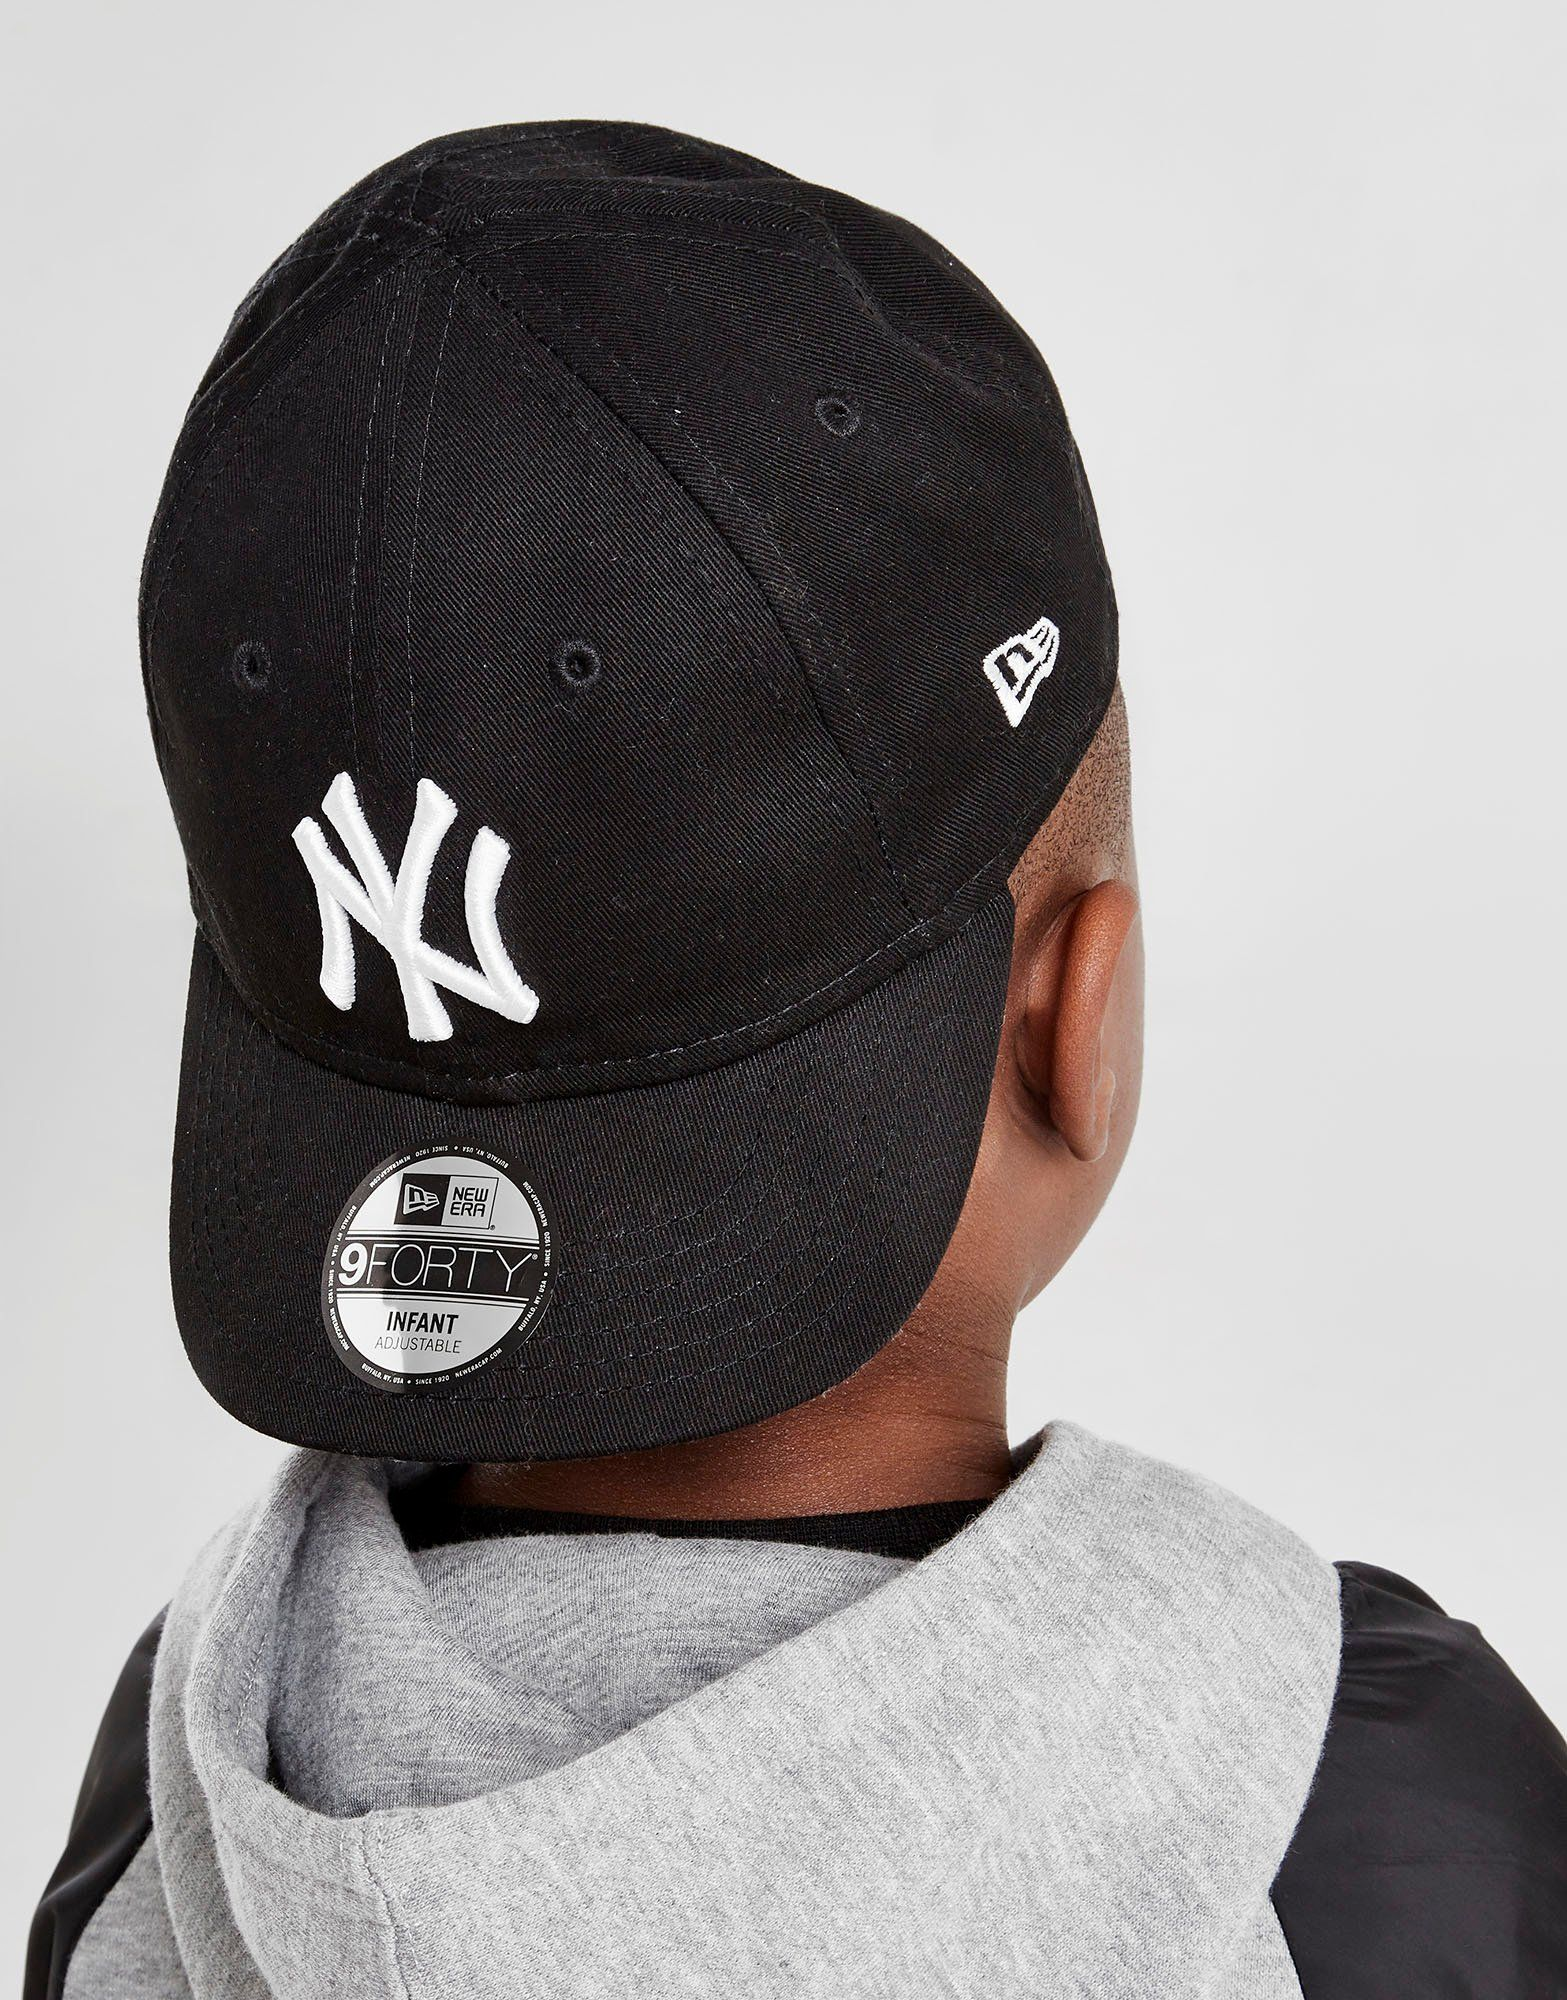 New Era gorra MLB New York Yankees 9FORTY infantil